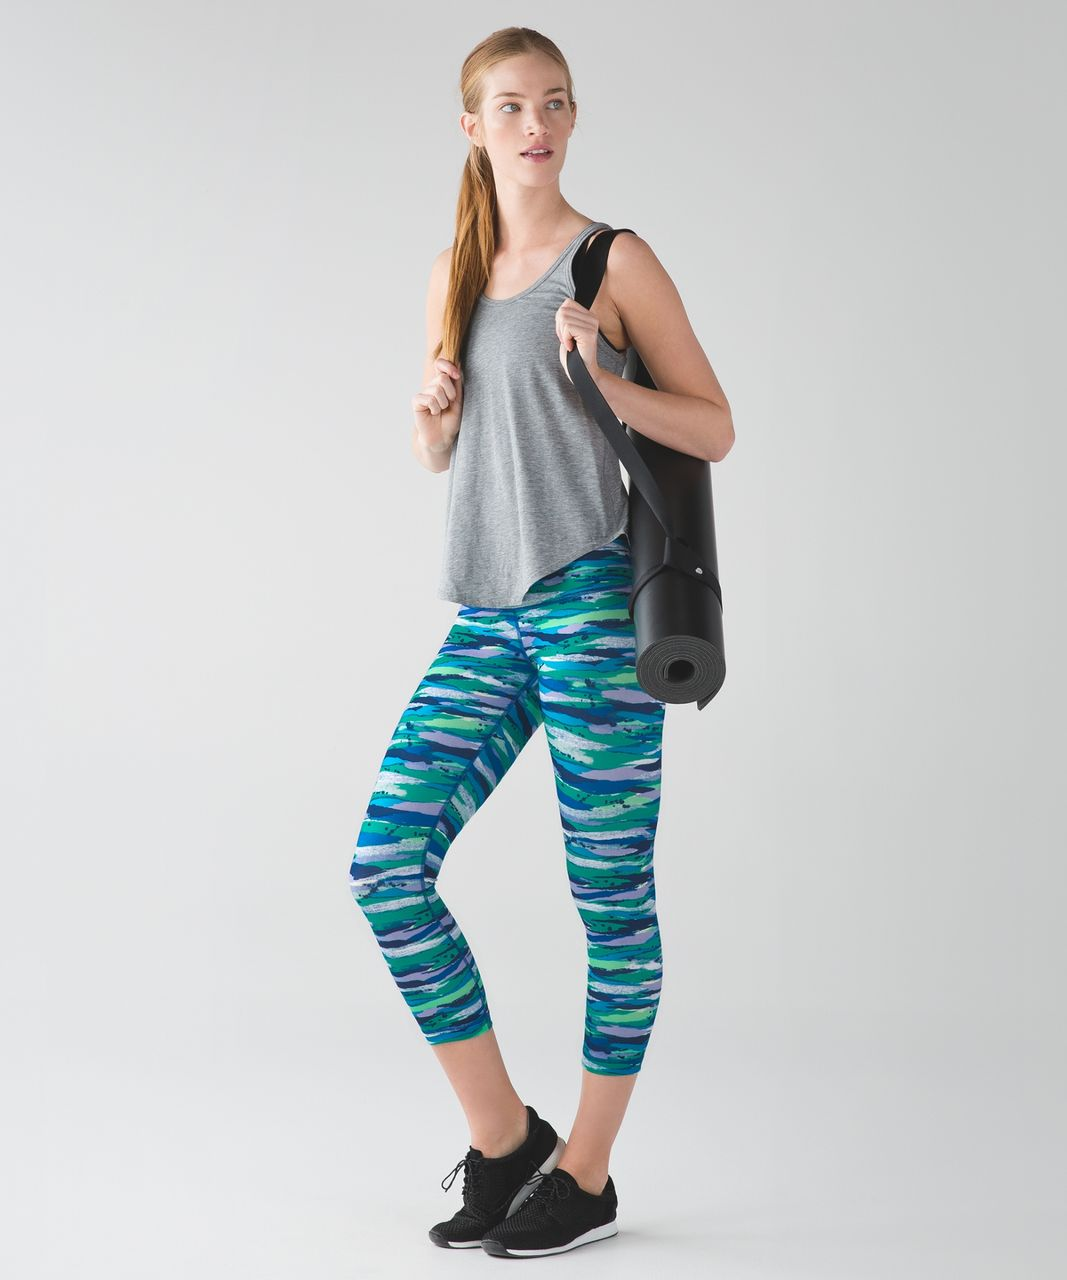 Lululemon Wunder Under Crop (Hi-Rise) - Seven Wonders Multi